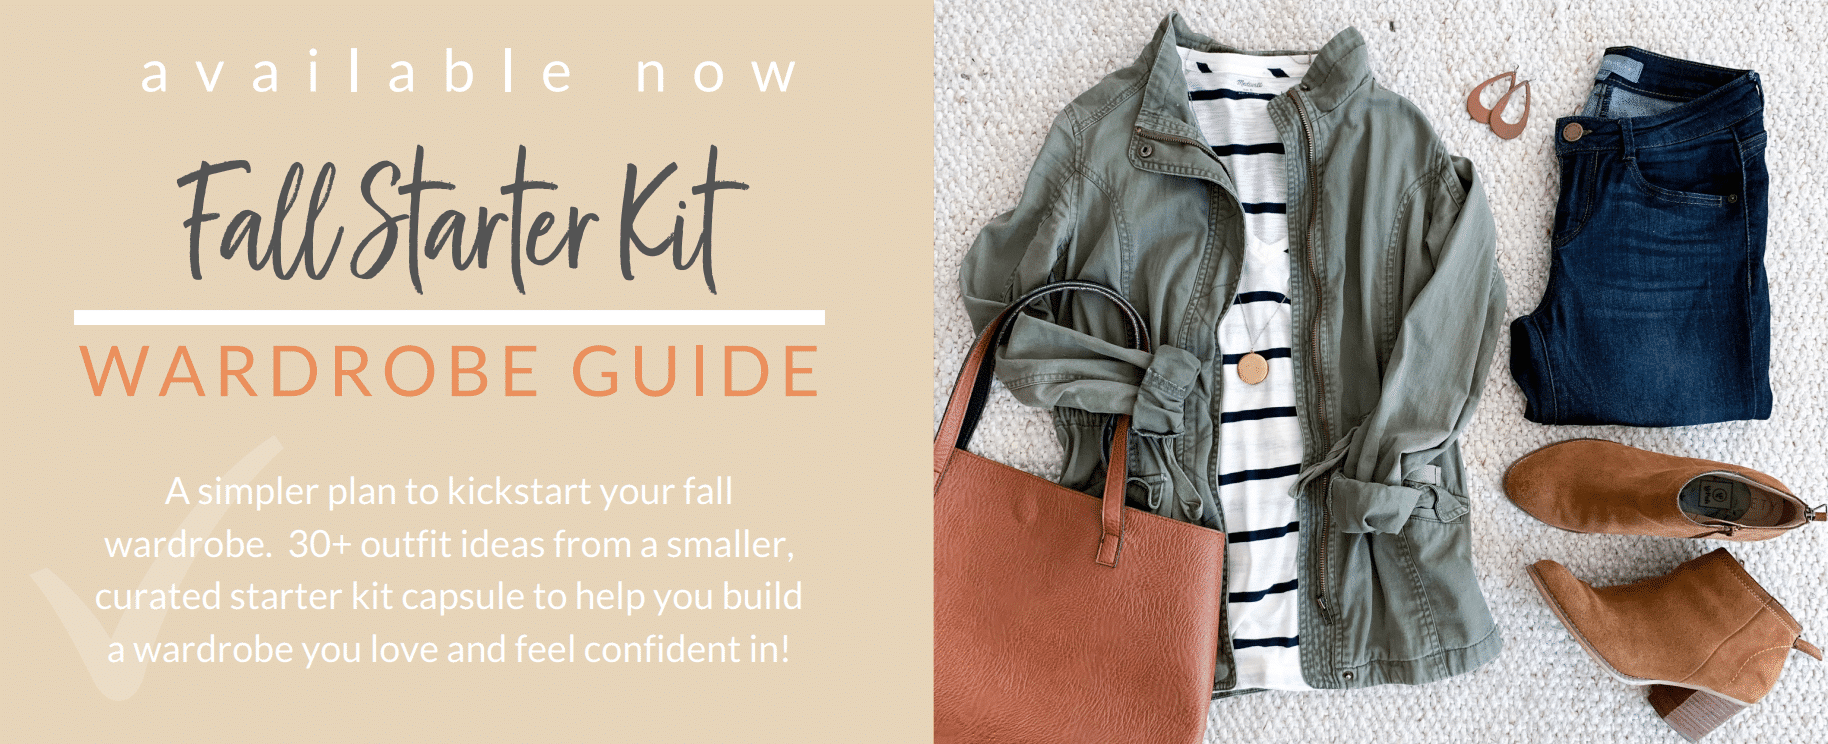 Fall Starter Kit Wardrobe Guide Now Available